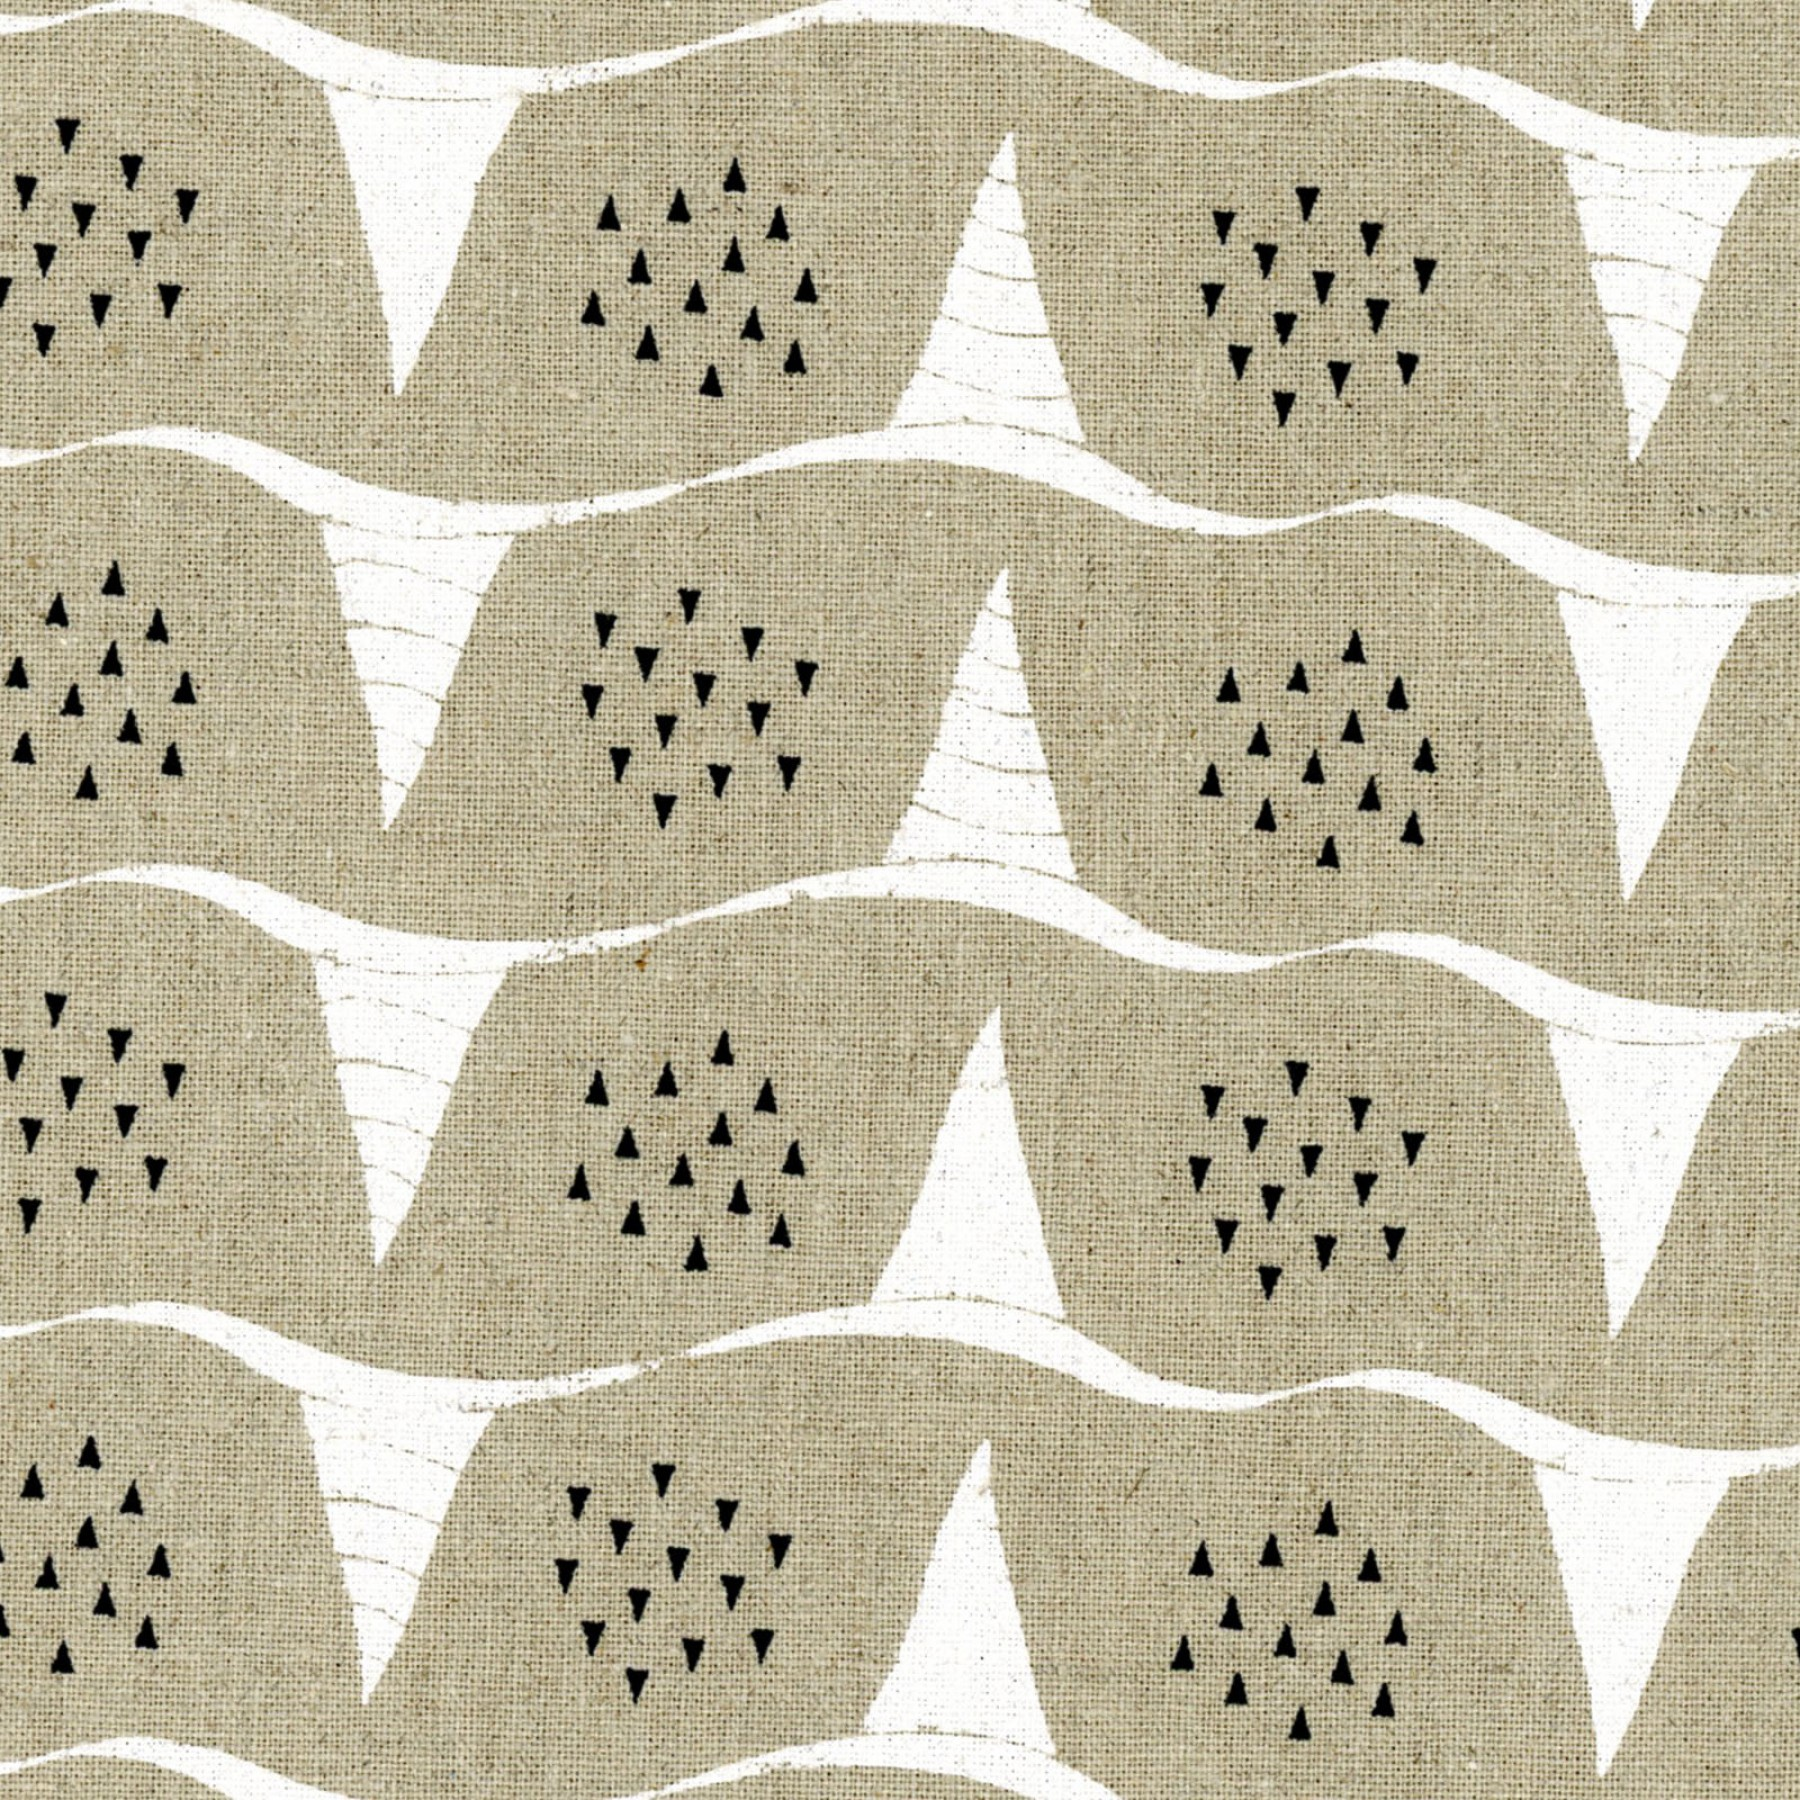 Corn in A-Natural (Cotton Linen Canvas Fabric) by Fabrika Uka from the Tayutou collection for Kokka #kokjg-50900904-A